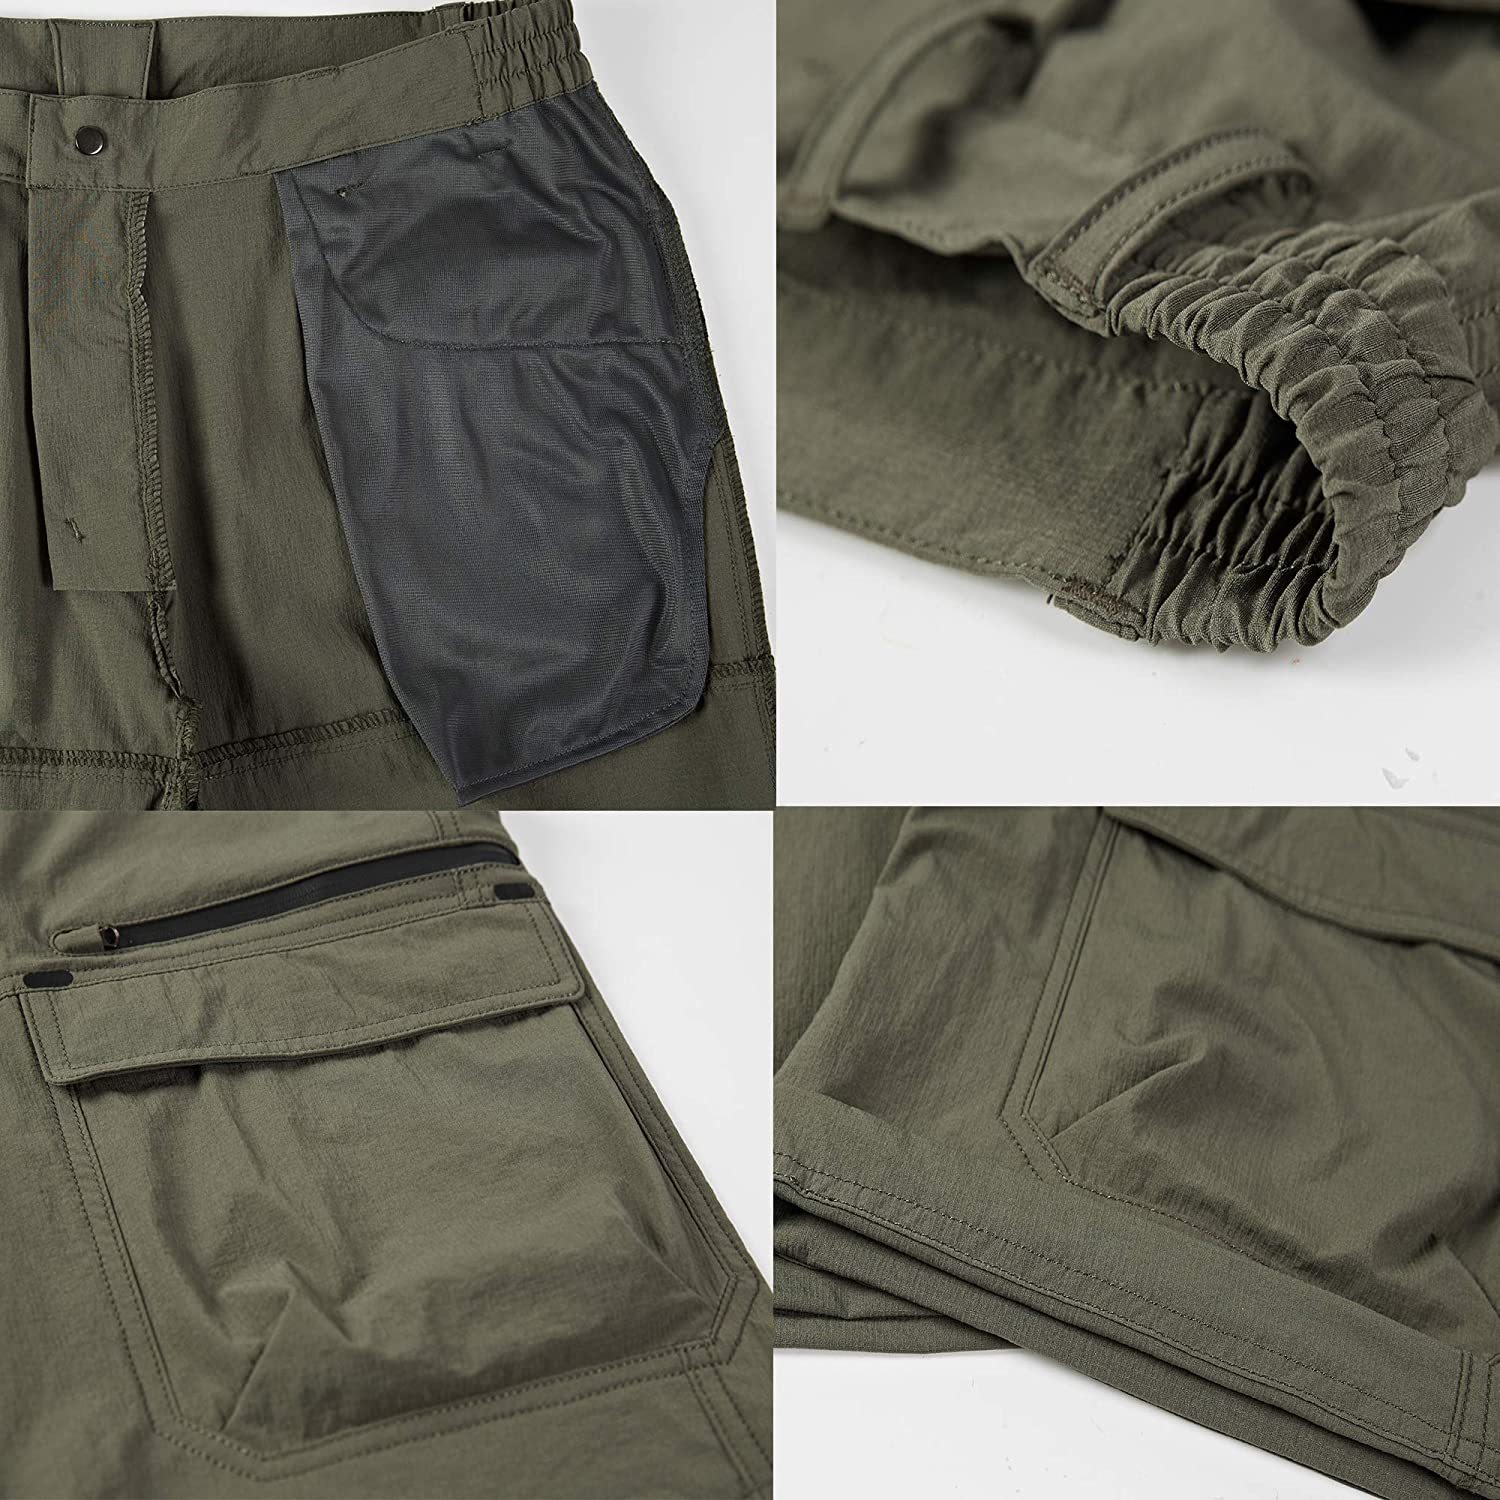 Vcansion Mens Outdoor Lightweight Quick Dry Hiking Shorts Sports Casual Shorts